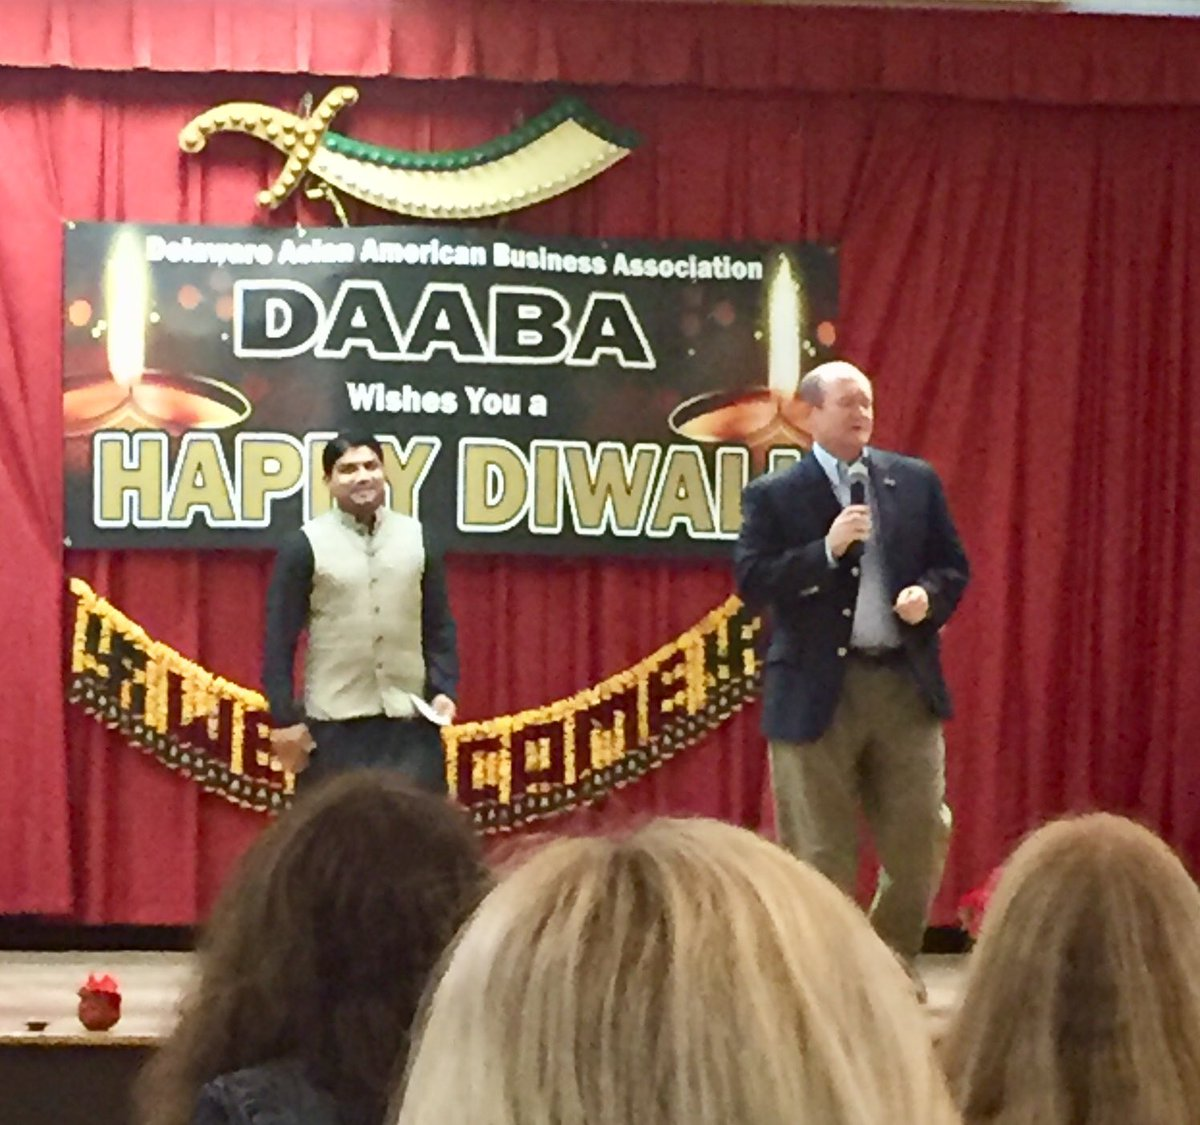 Great to join DE Asian American Business Association (DAABA) friends for annual #Diwali Party. Great celebration of culture - & food! #netDE